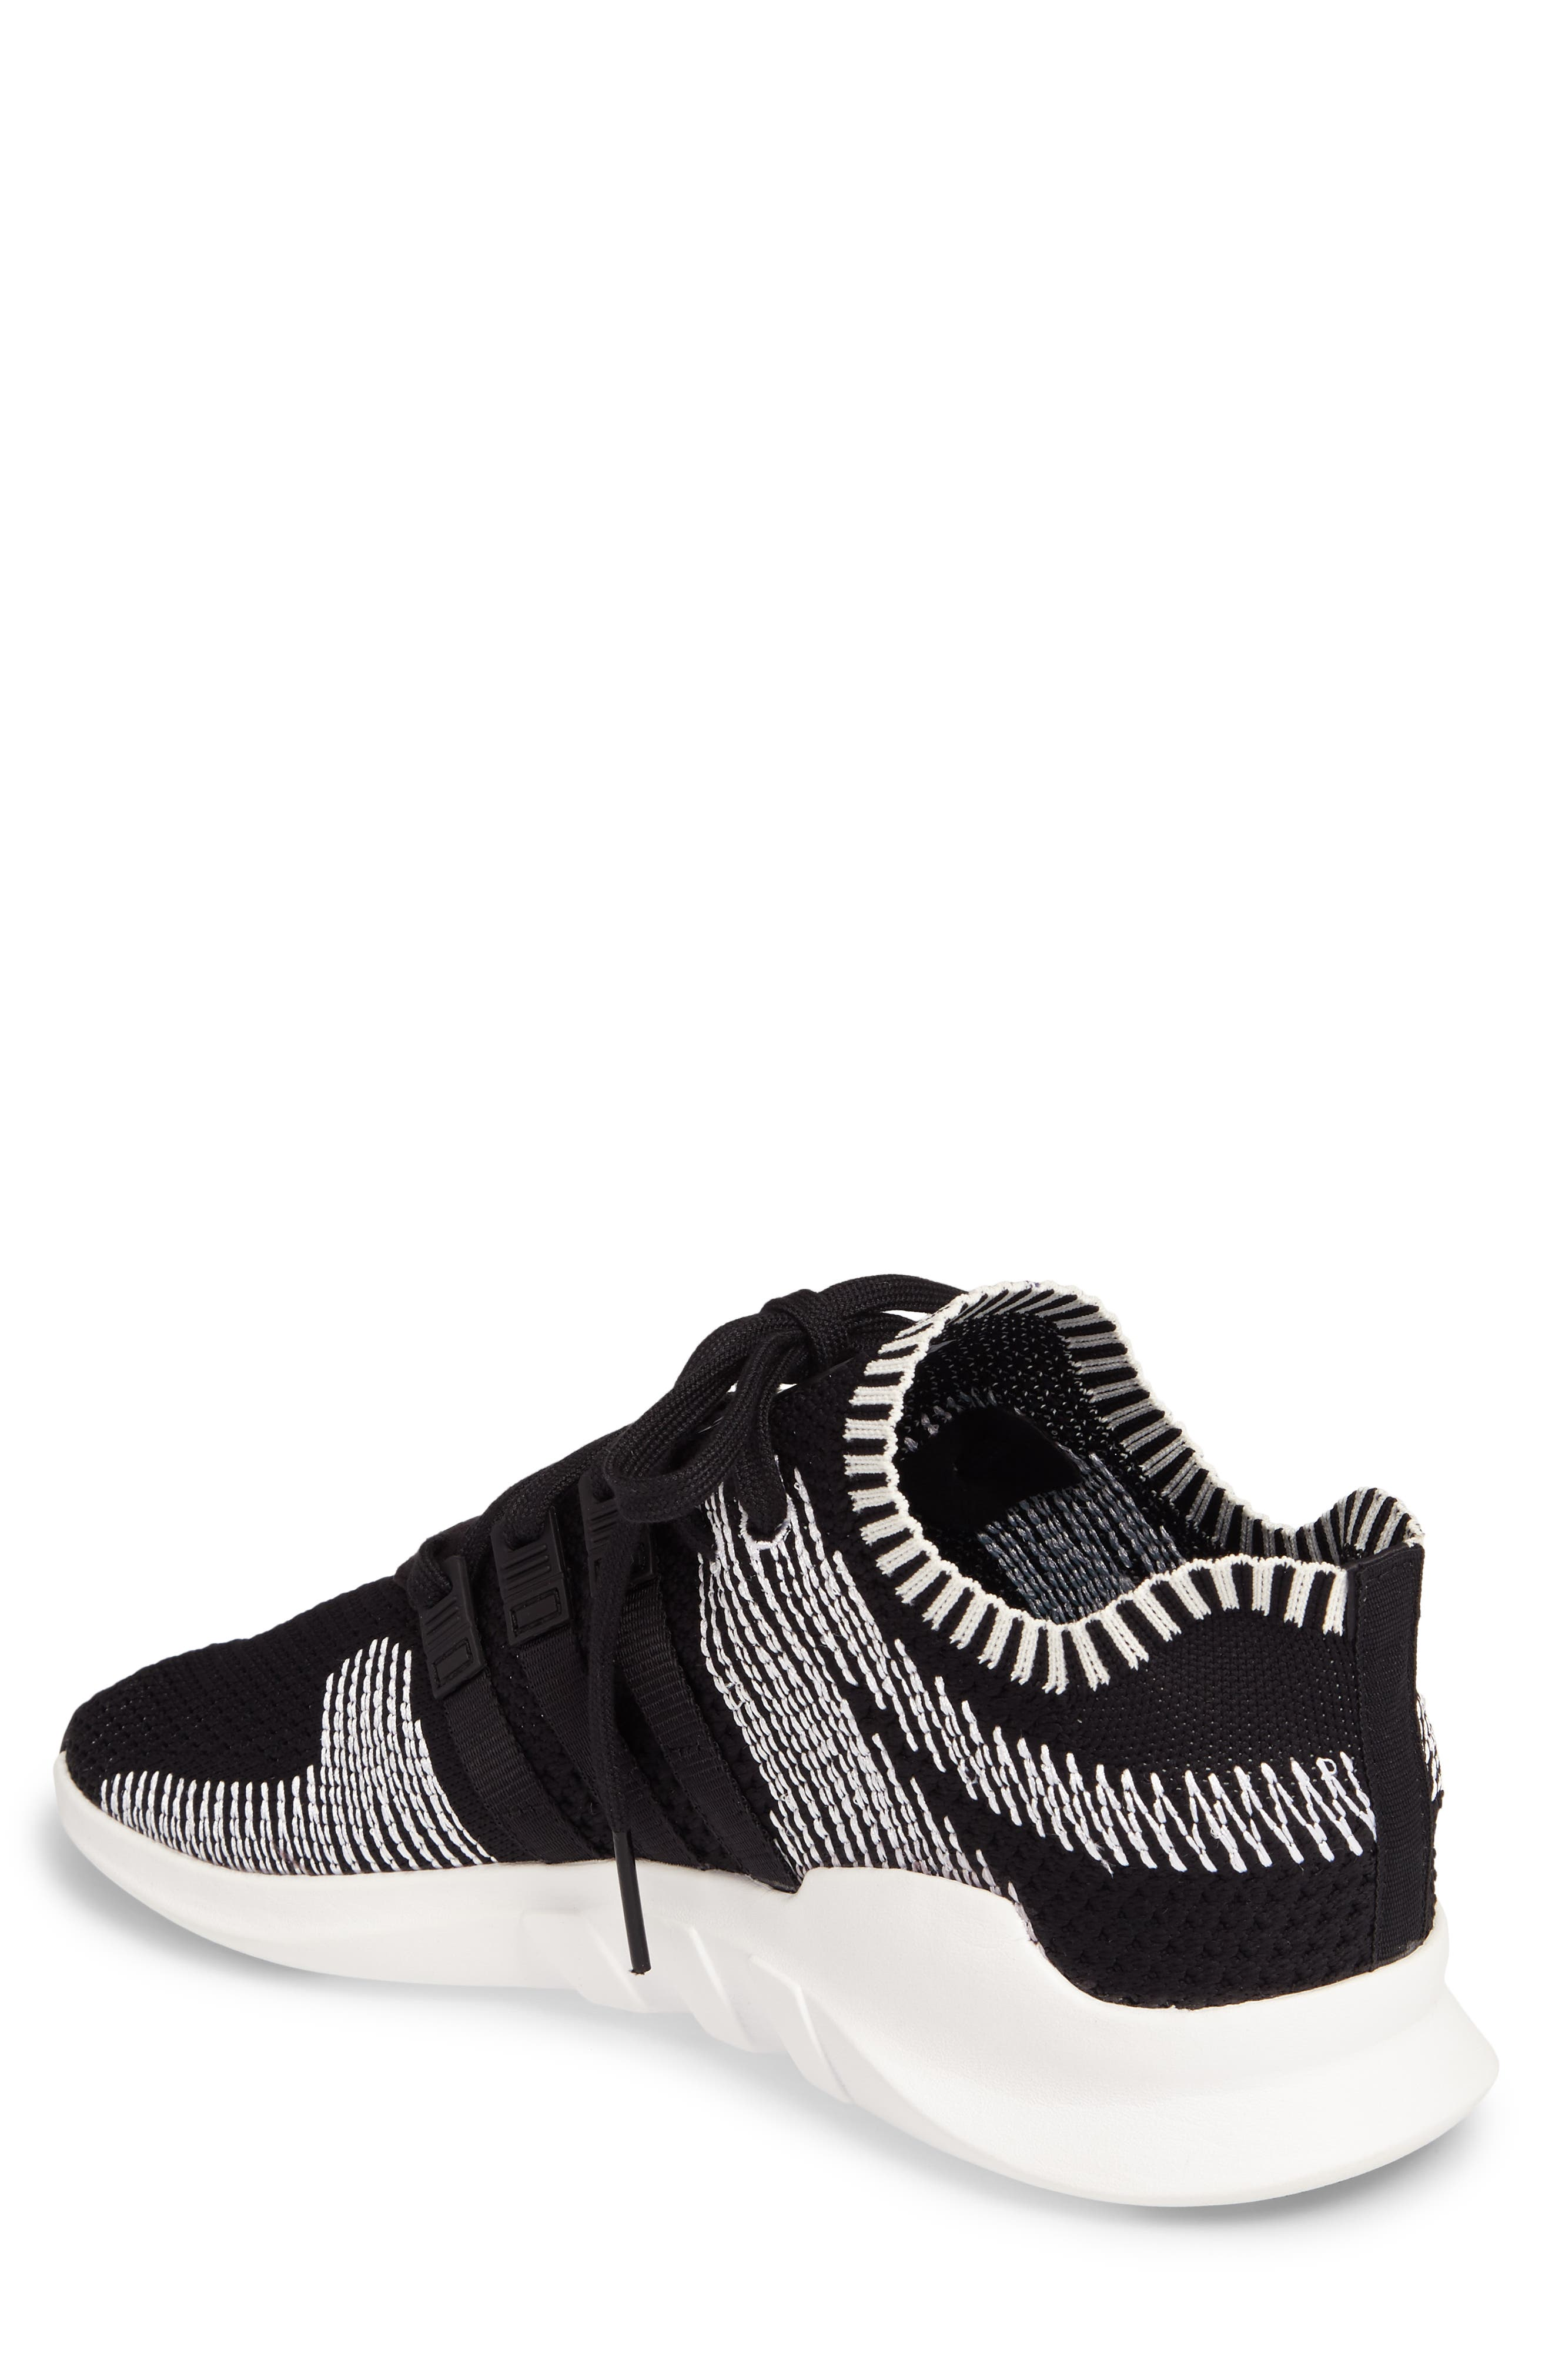 EQT Support ADV PrimeKnit Sneaker,                             Alternate thumbnail 2, color,                             001